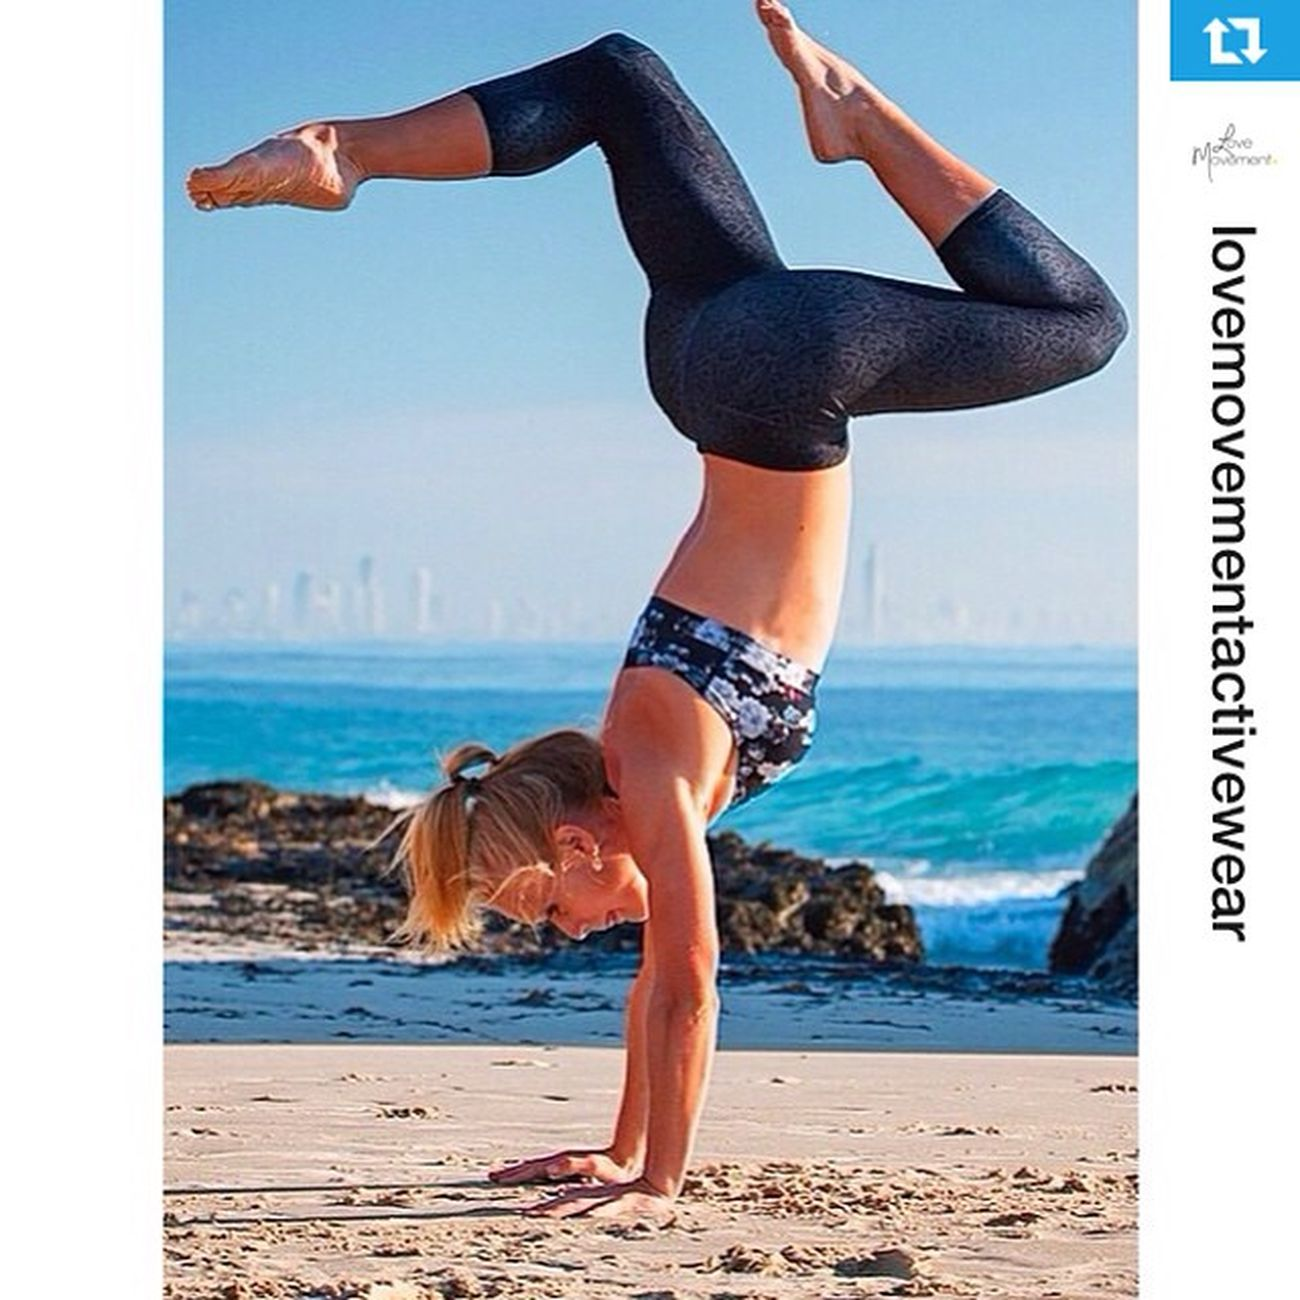 Repost from @lovemovementactivewear with @repostapp of a shoot with @courtneygilfillan ... Athleticism Handstand  Triathlete ・・・